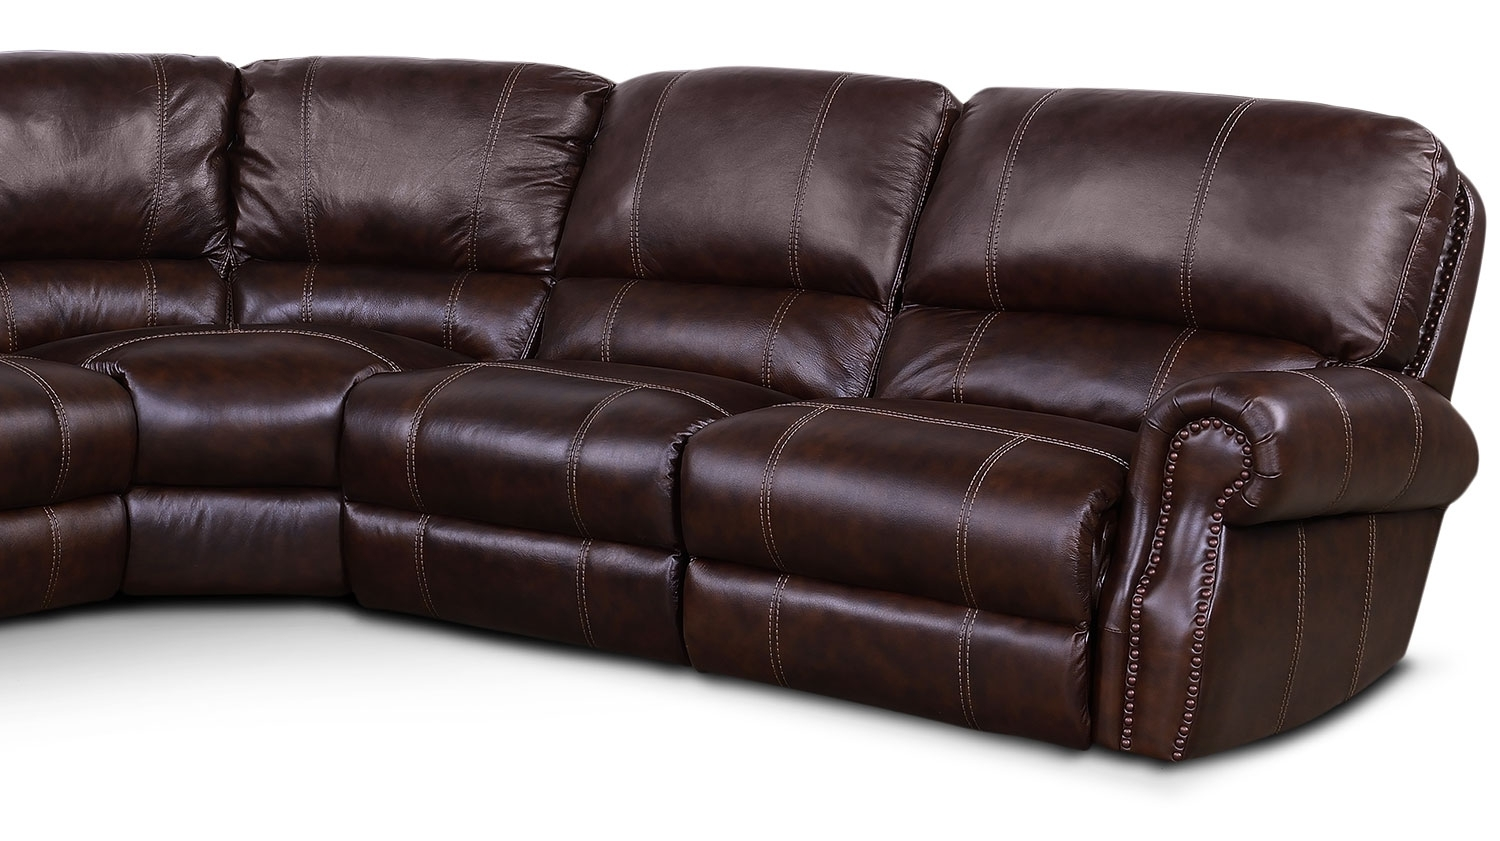 Dartmouth 6 Piece Power Reclining Sectional W/ Left Facing Chaise Pertaining To Norfolk Chocolate 3 Piece Sectionals With Laf Chaise (View 19 of 25)